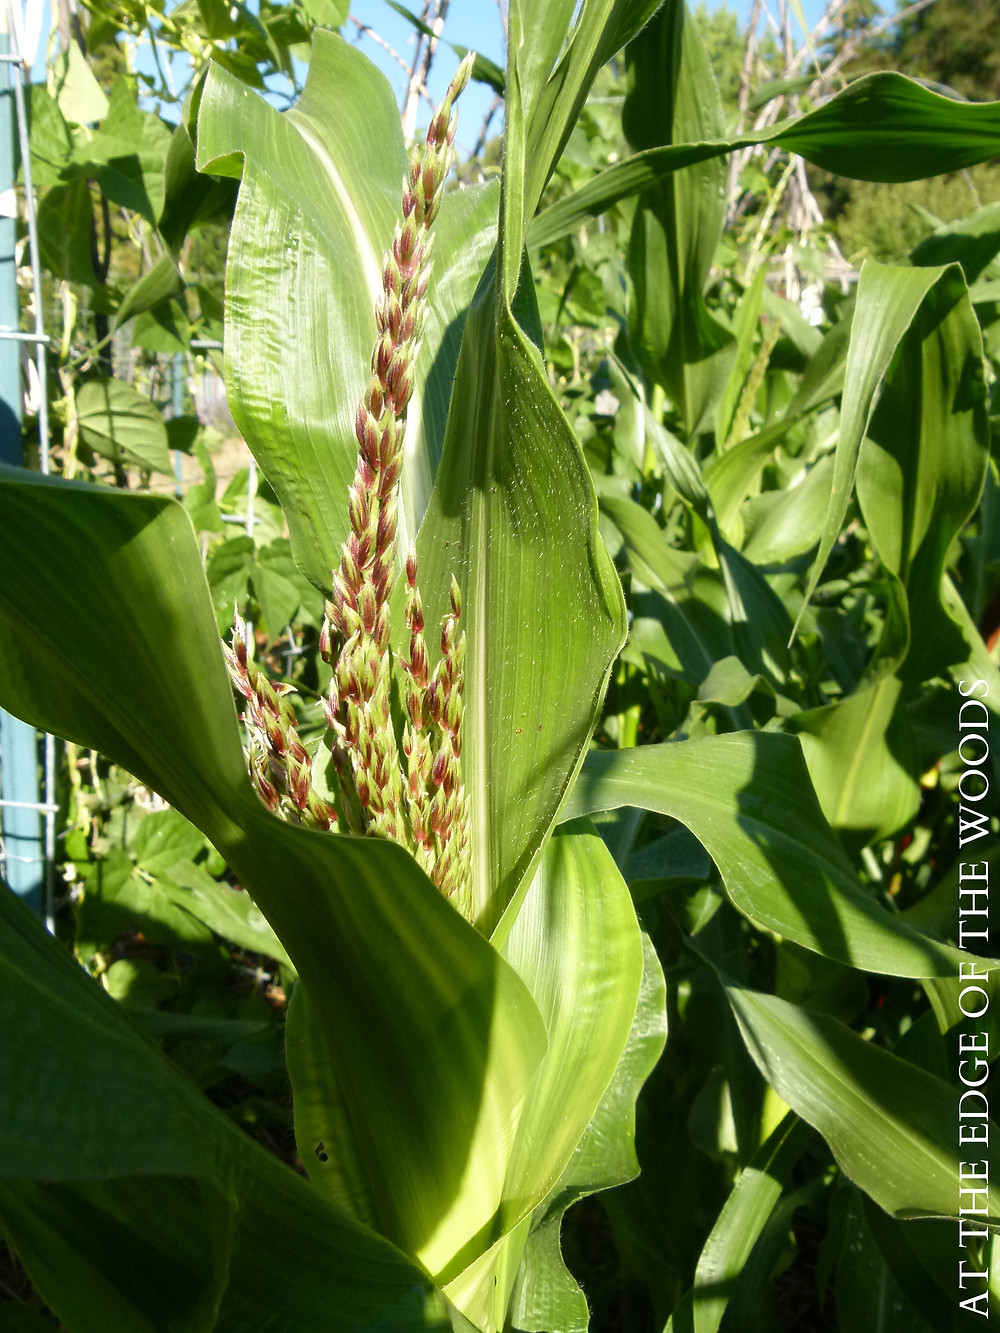 a corn tassel about to bloom